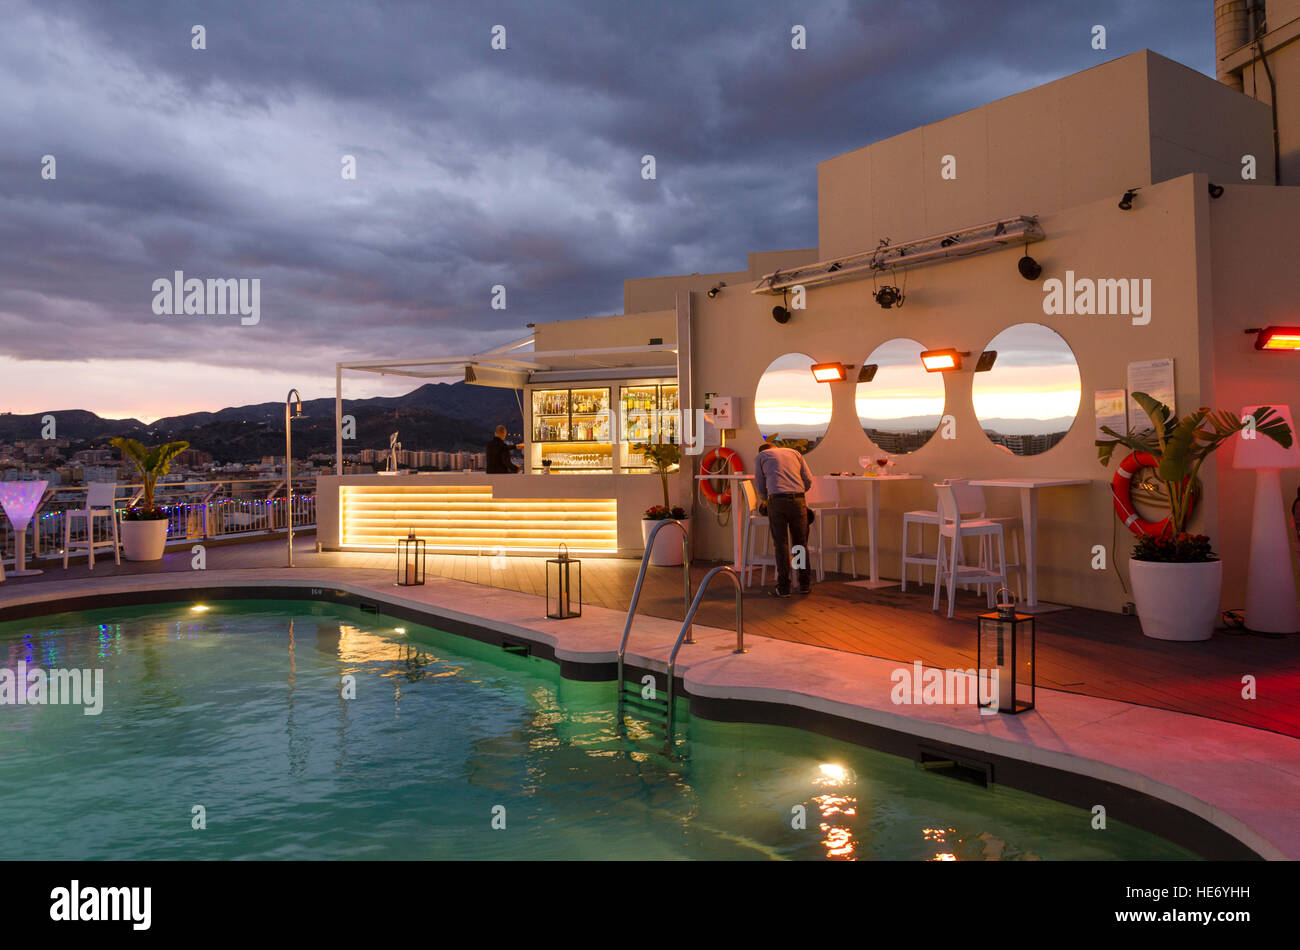 Rooftop Terrace of AC Hotel Malaga Palacio in Malaga, during sunset, Andalusia, Spain. - Stock Image